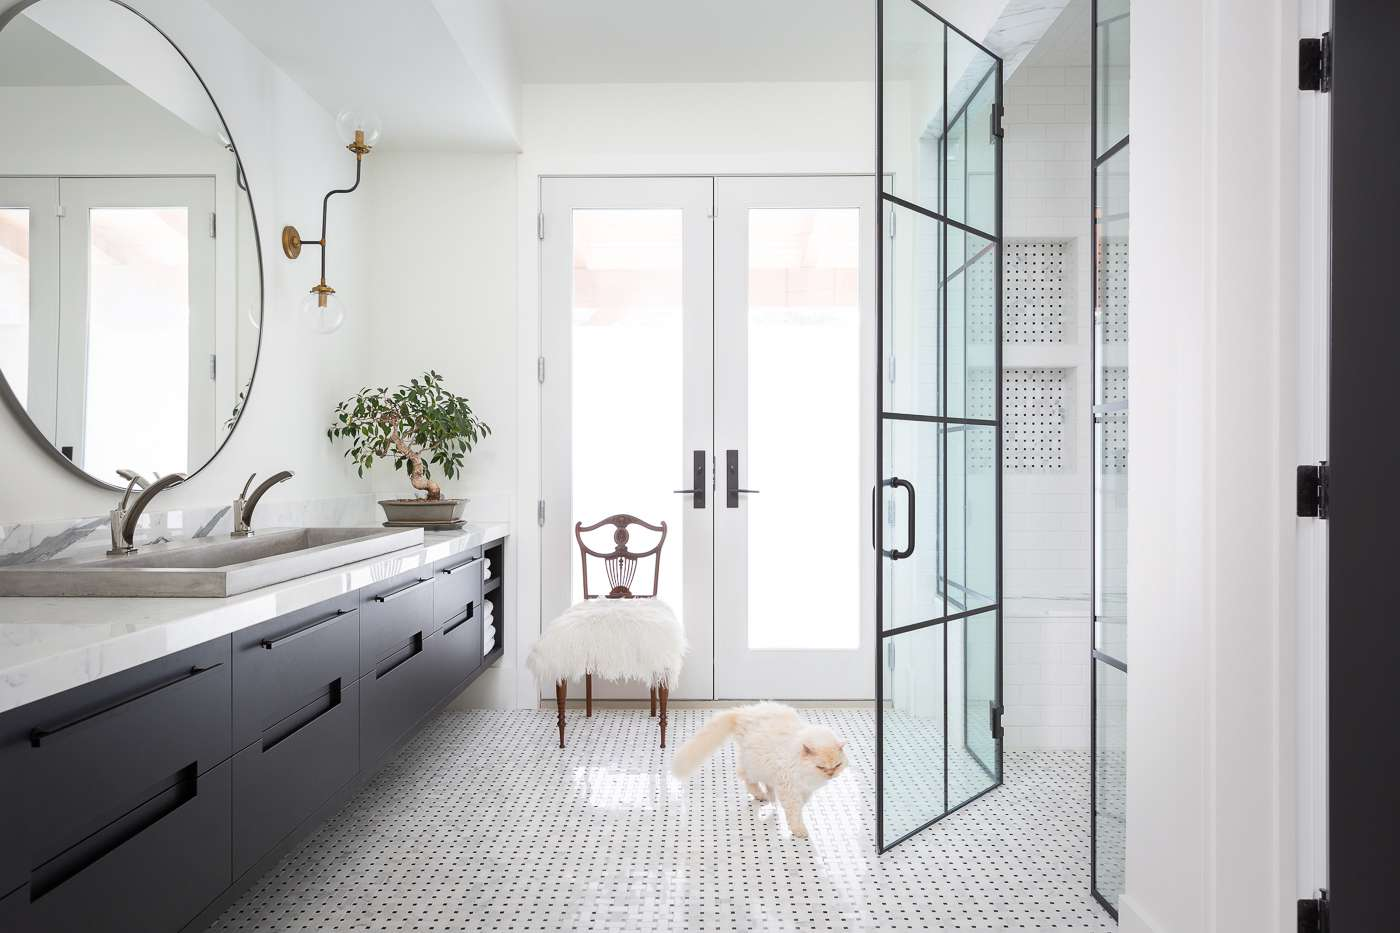 A bathroom featuring a double vanity with ample counterspace